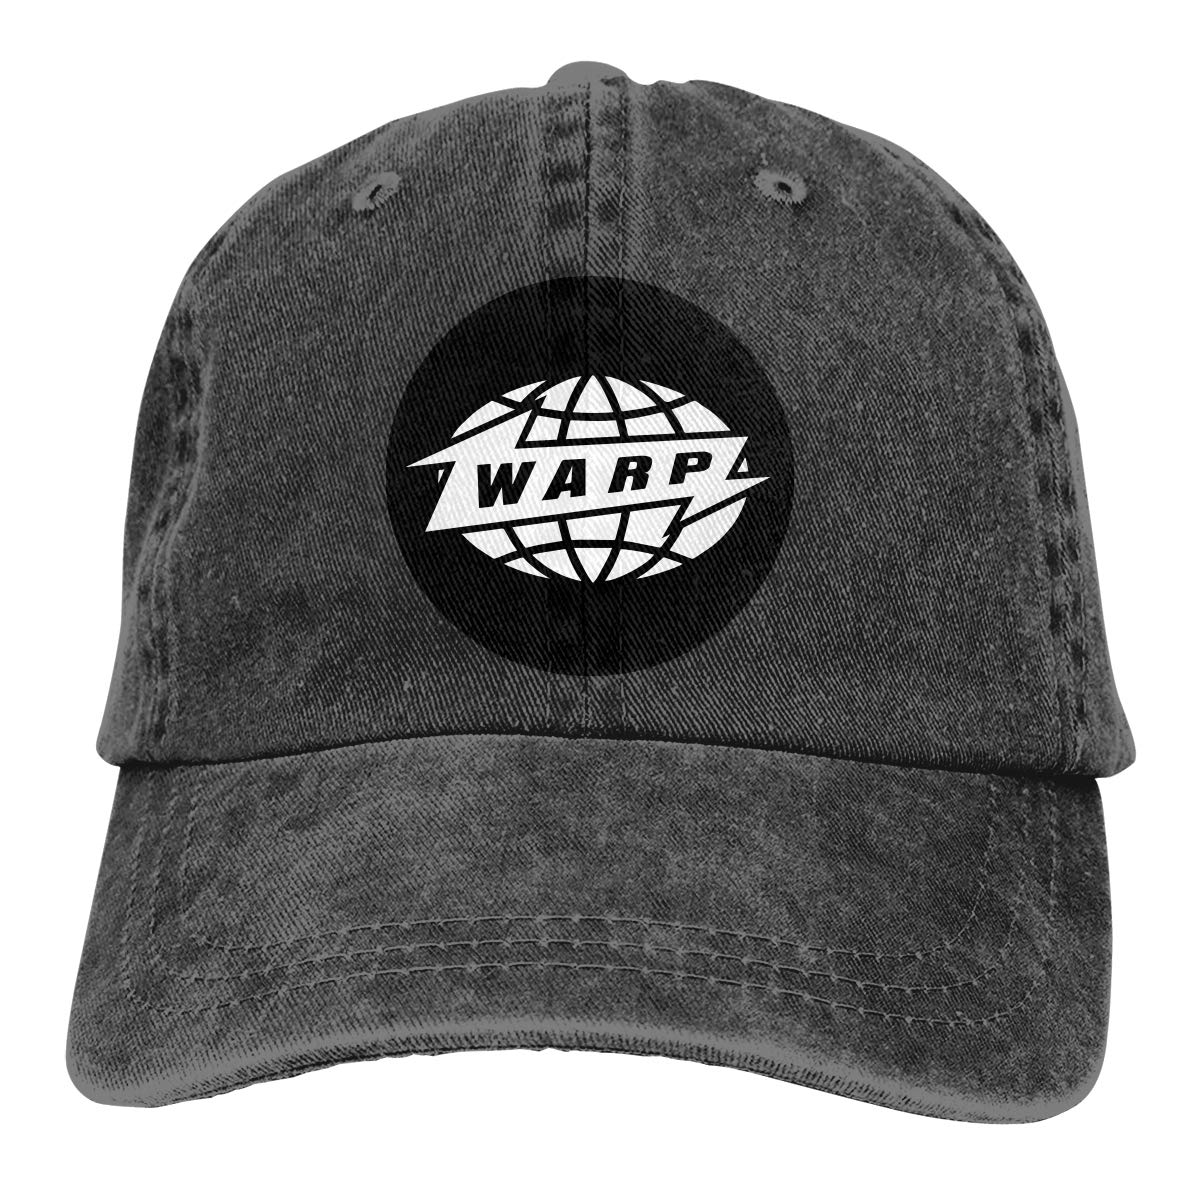 Warp Adult Custom Cowboy Sun Hat Adjustable Baseball Cap